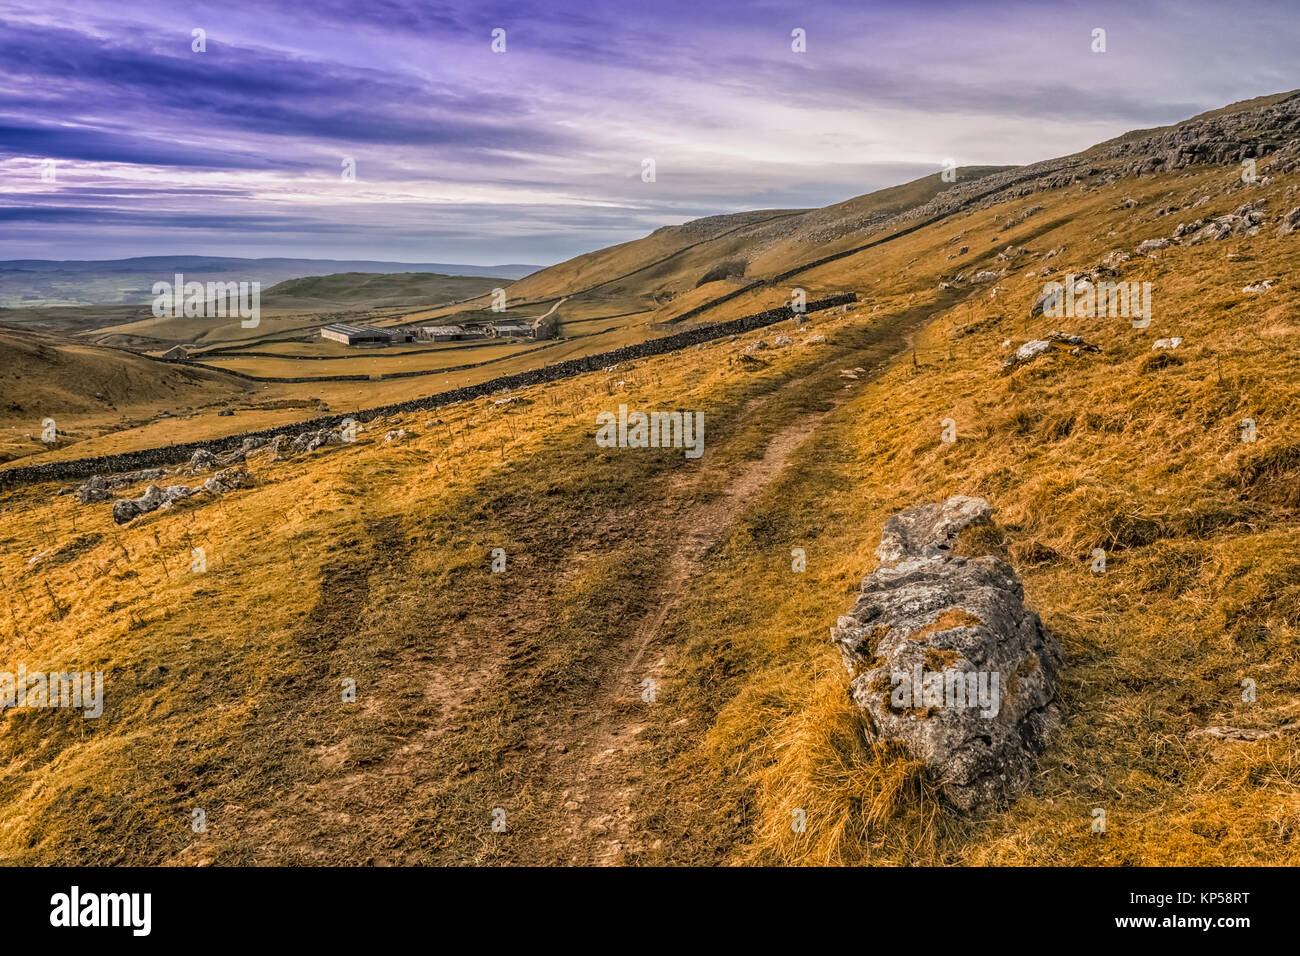 Hill walking above Settle and Malham in the Yorkshire Dales - Stock Image